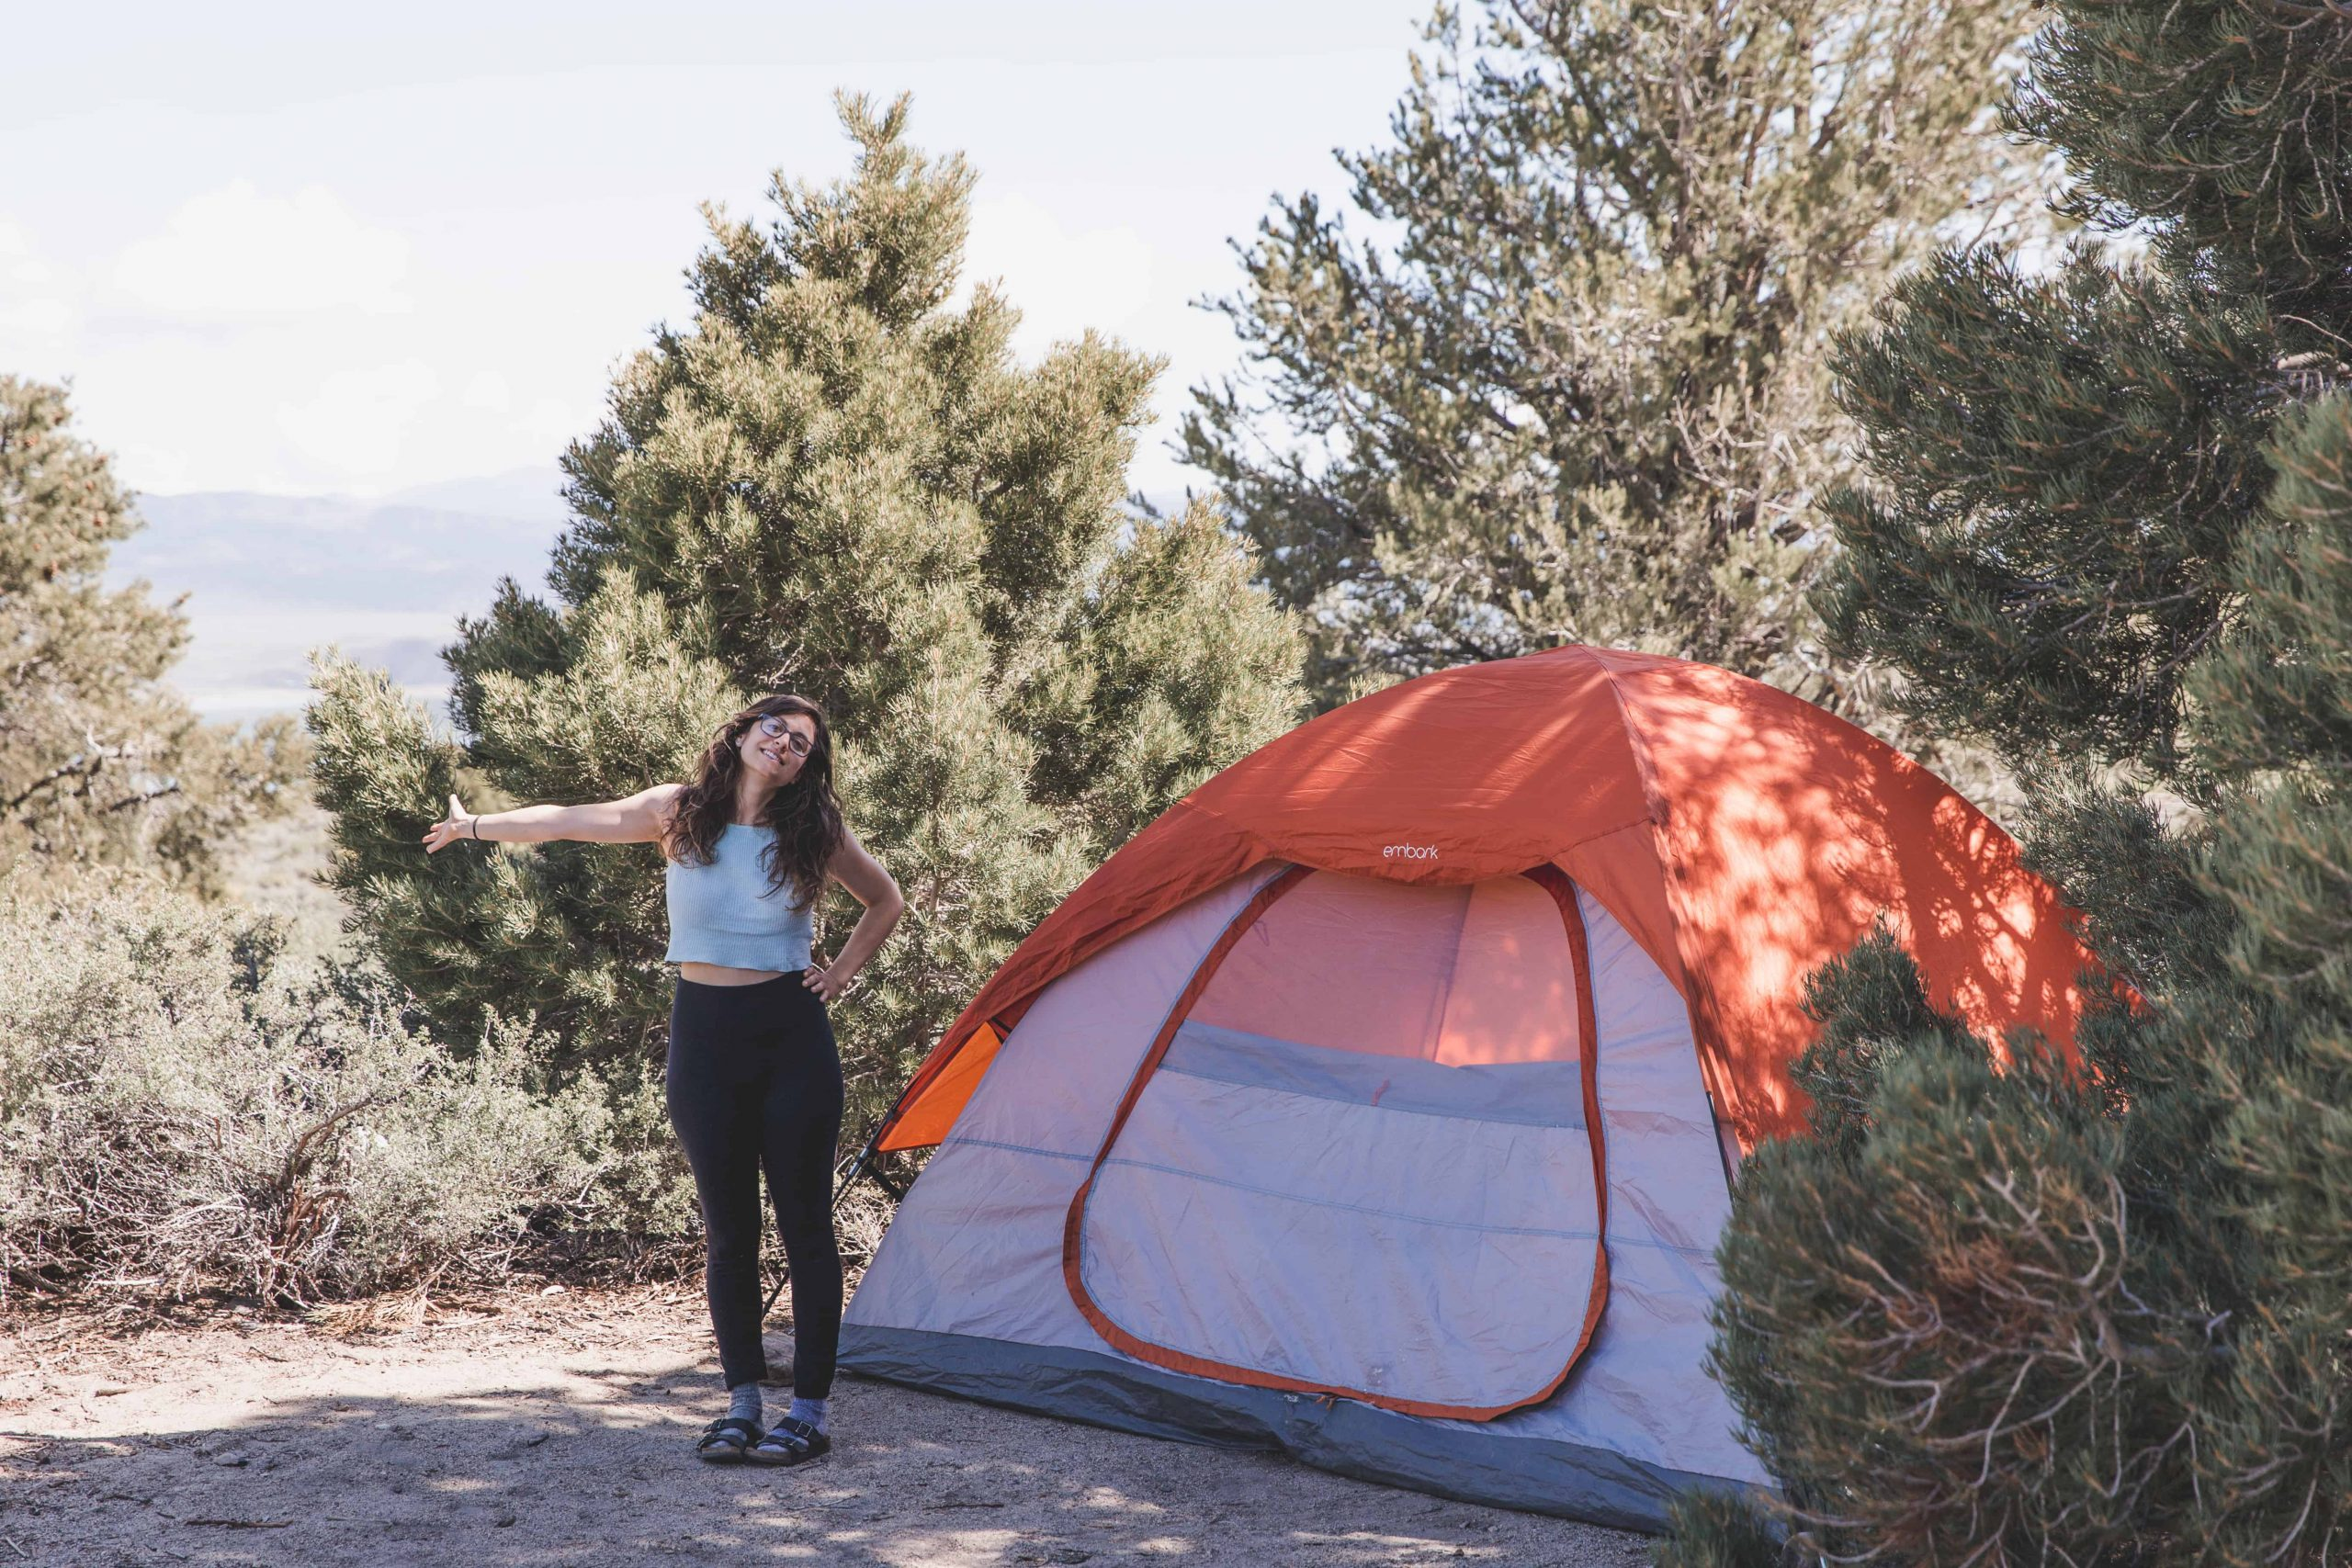 Kelsey in front of an orange tent camping near Mono Lake in Mammoth, California in the Eastern Sierras camping for free in California